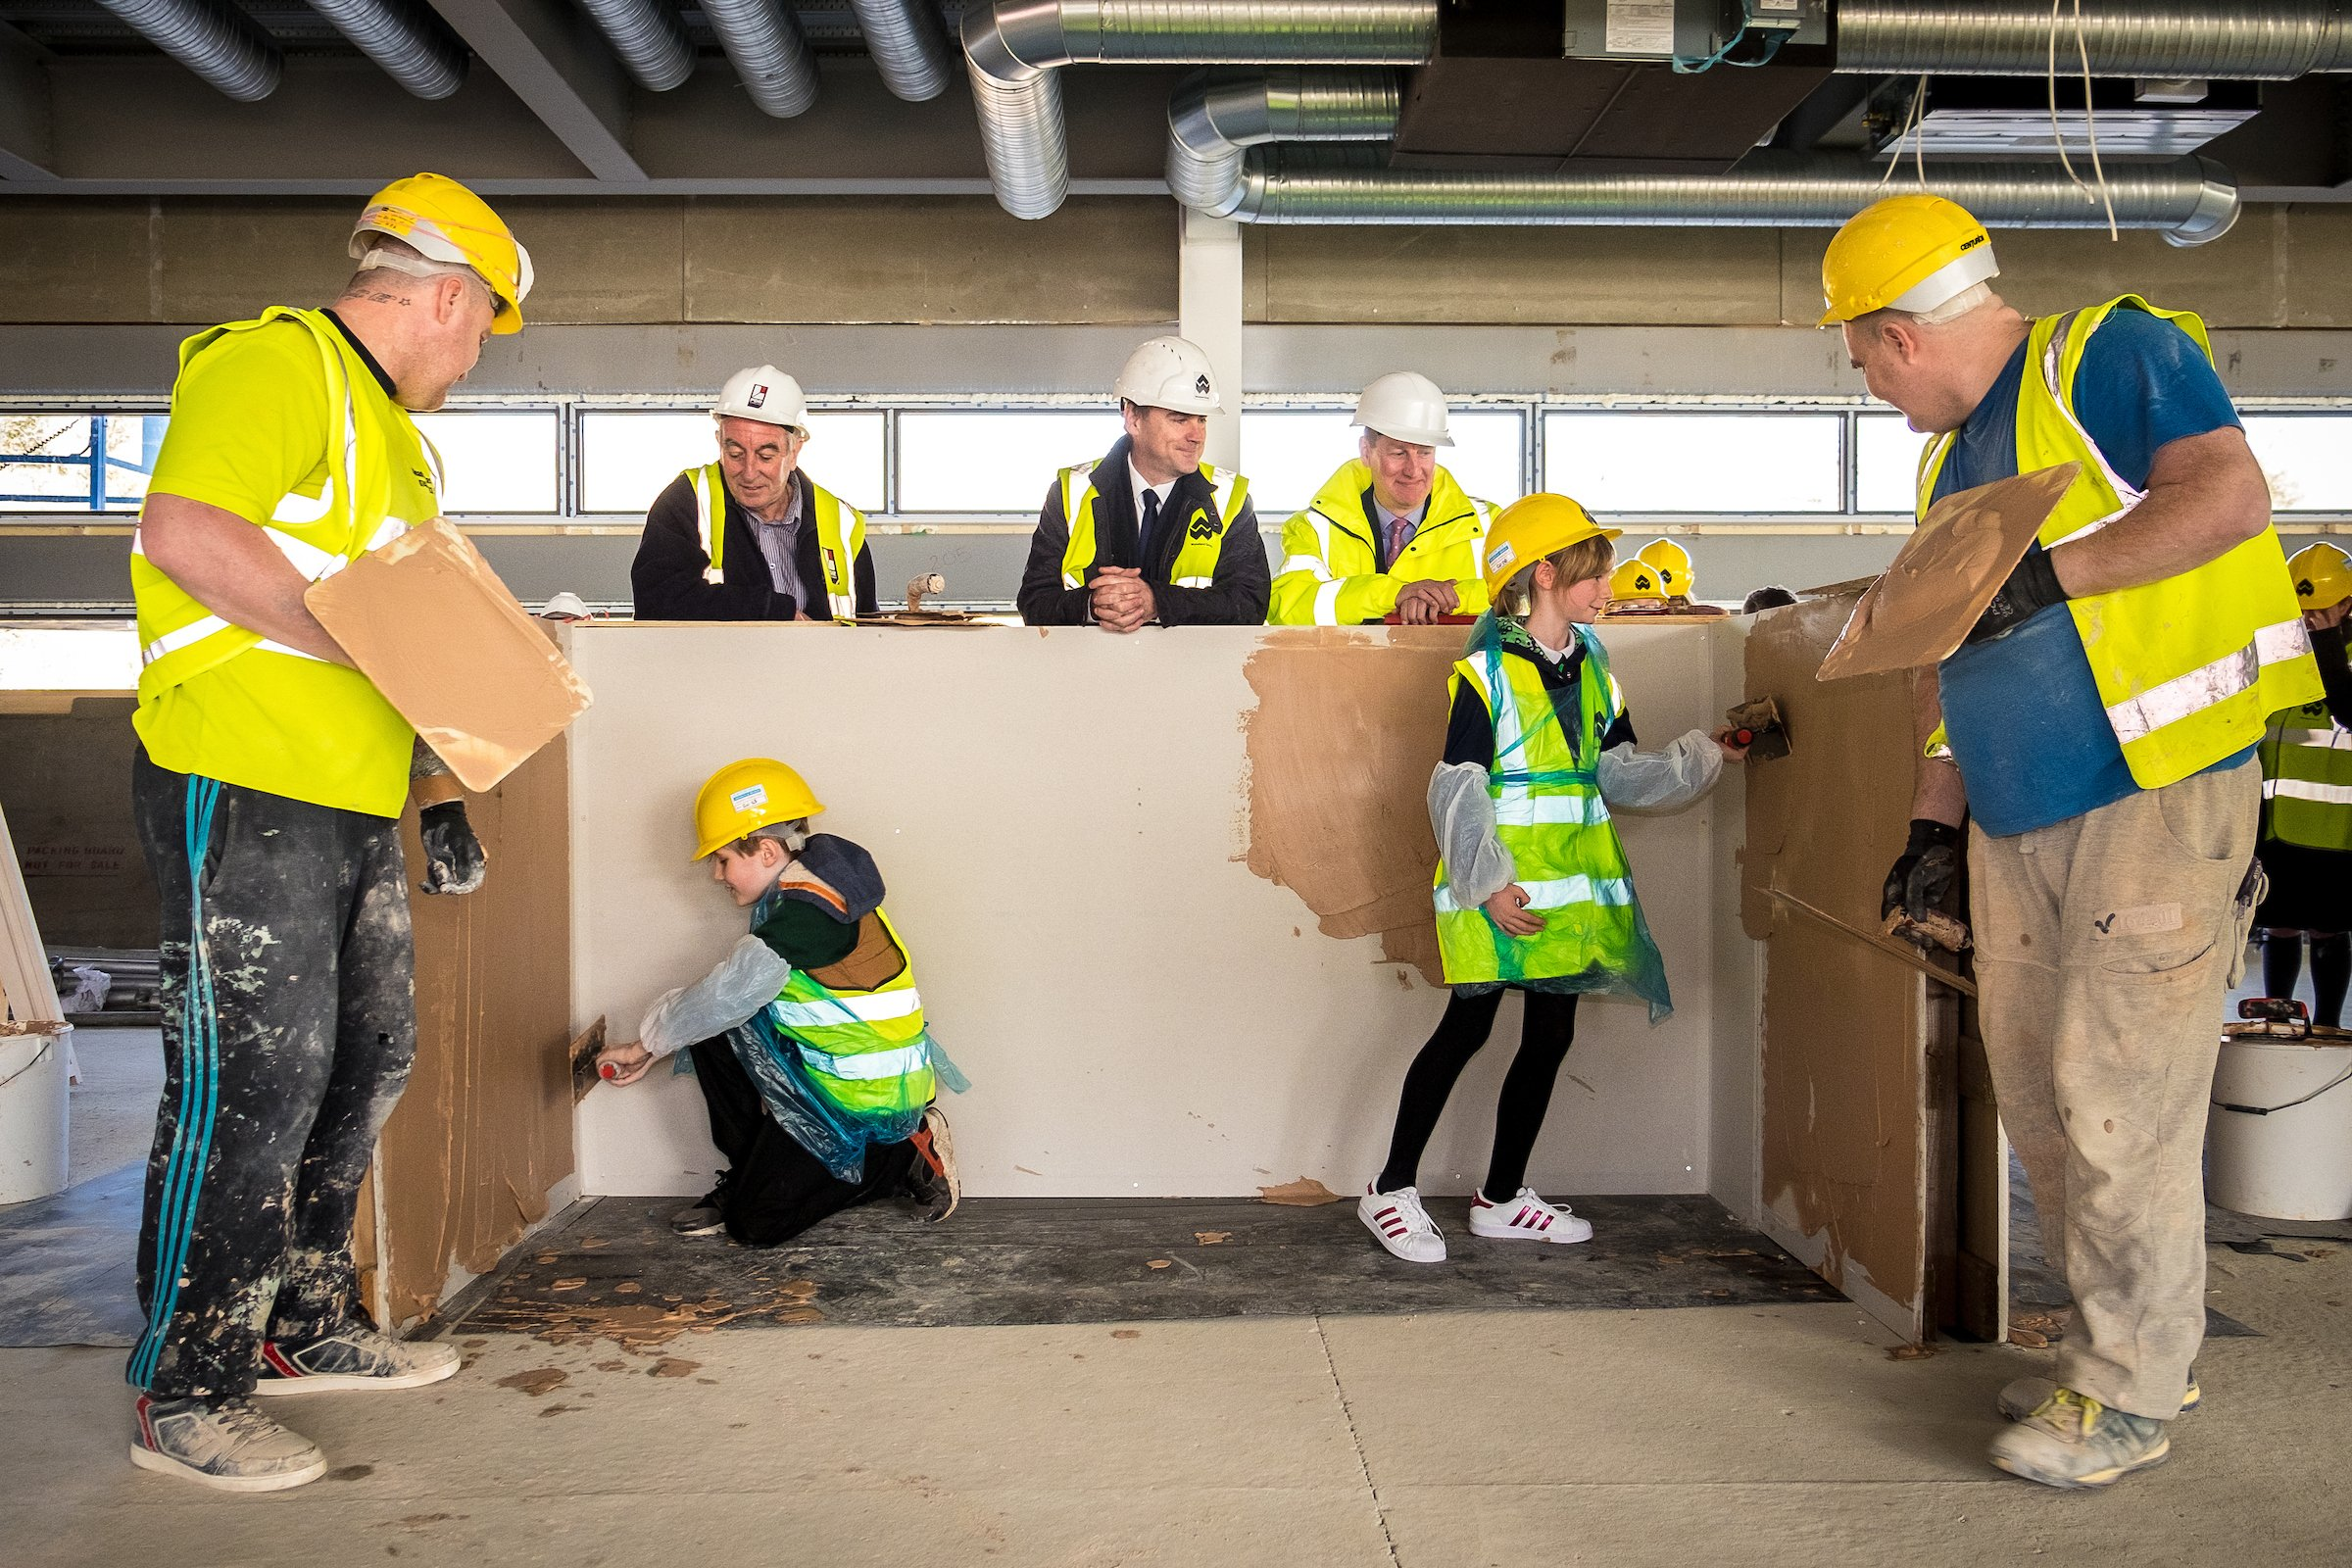 BEE Interiors Limited – helping pupils get hands on as construction site visit brings learning to life